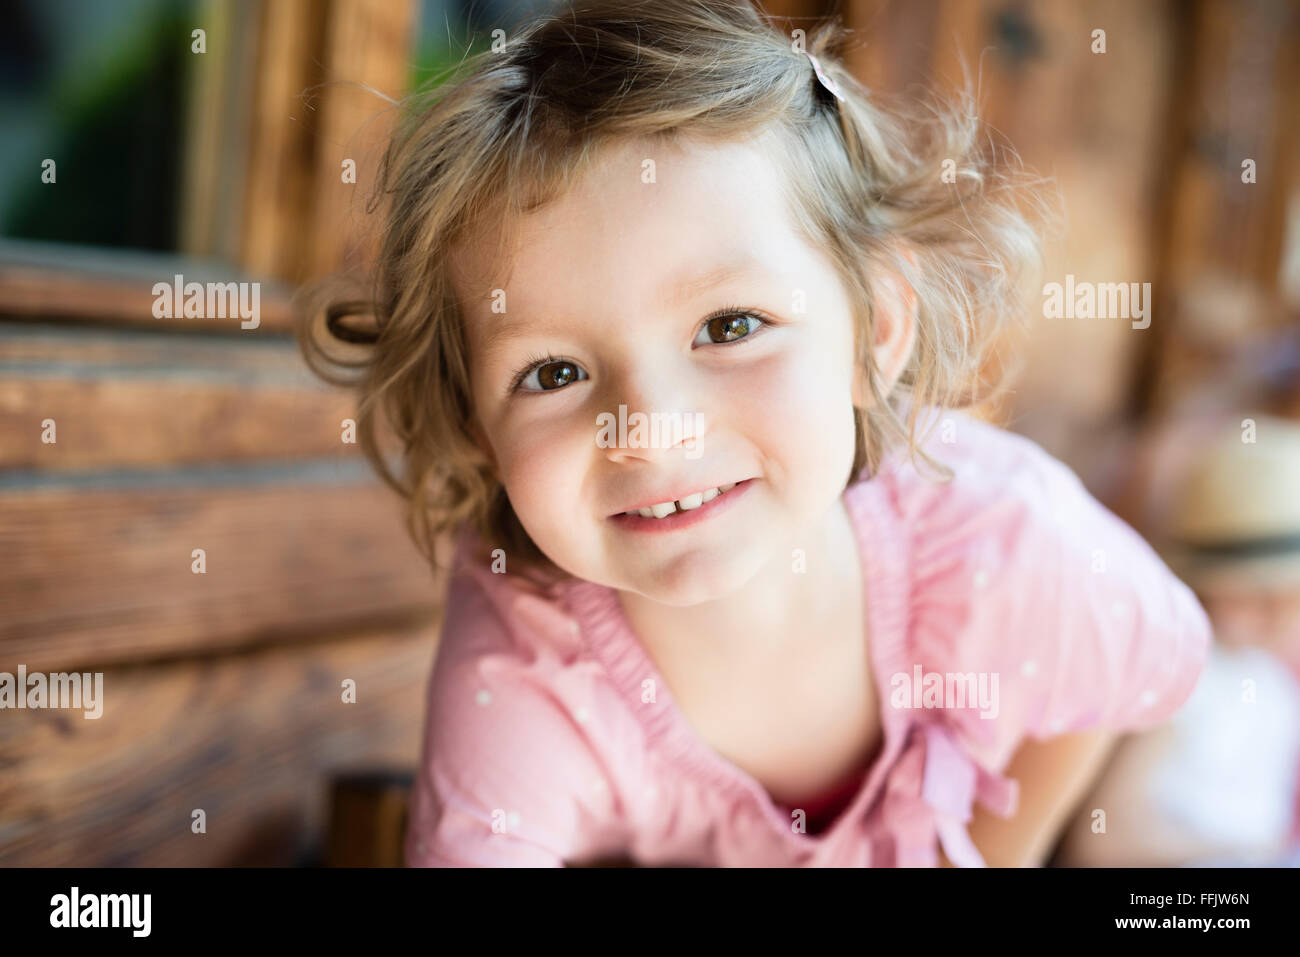 Portrait of little girl with blond hair Stock Photo